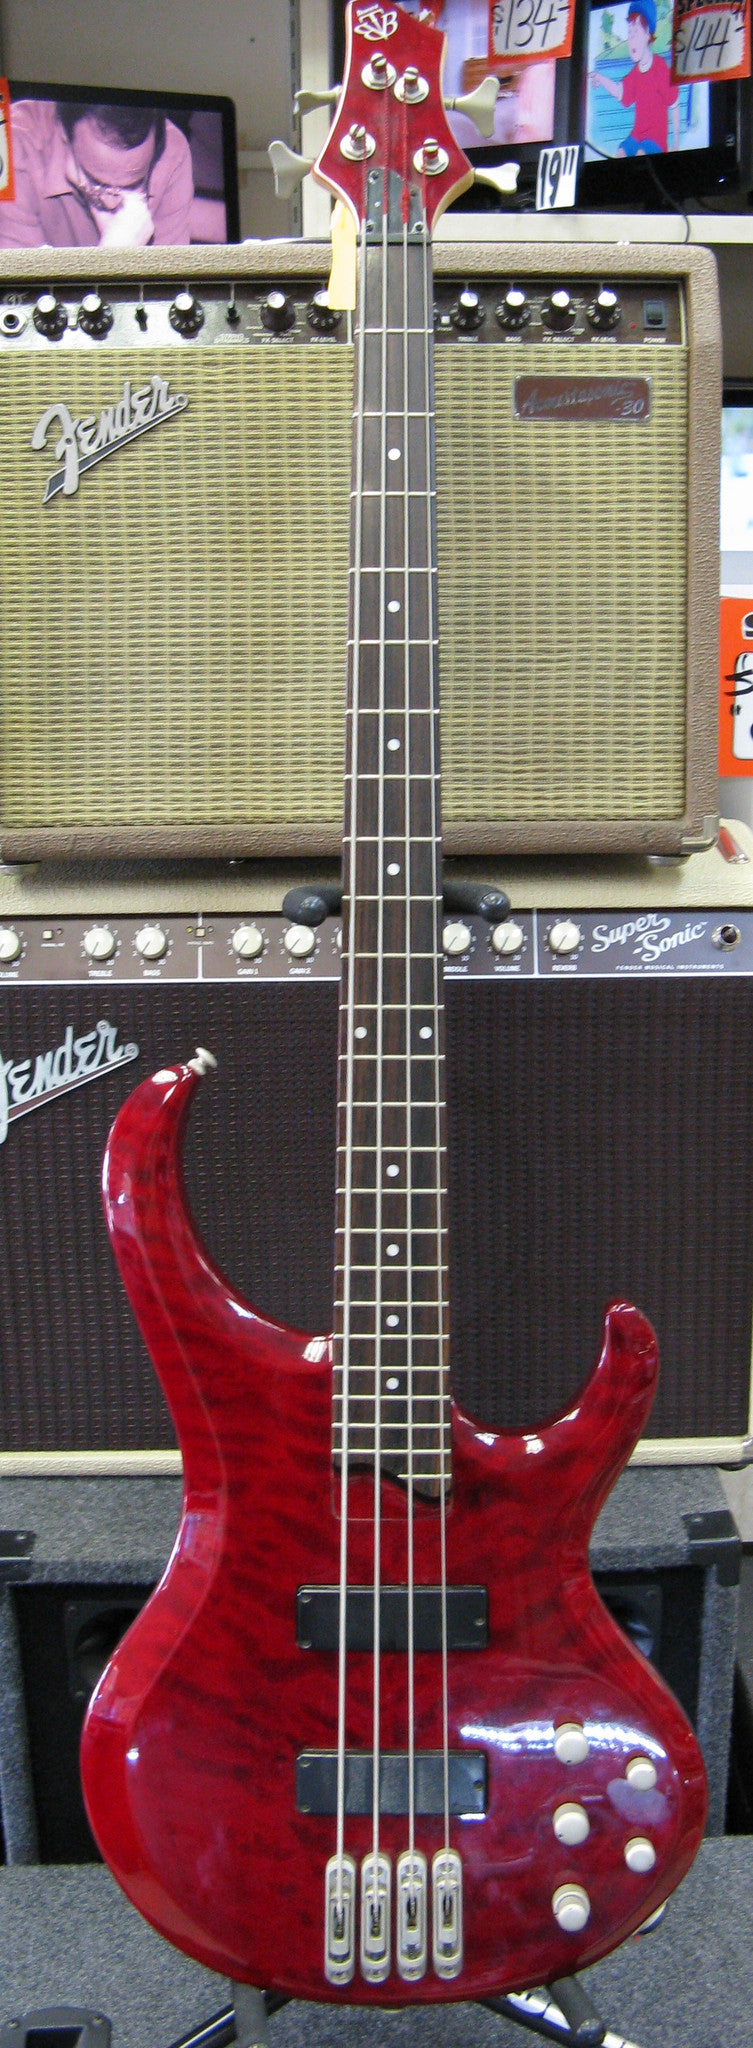 Ibanez BTB400QM Bass Guitar - Chicago Pawners & Jewelers